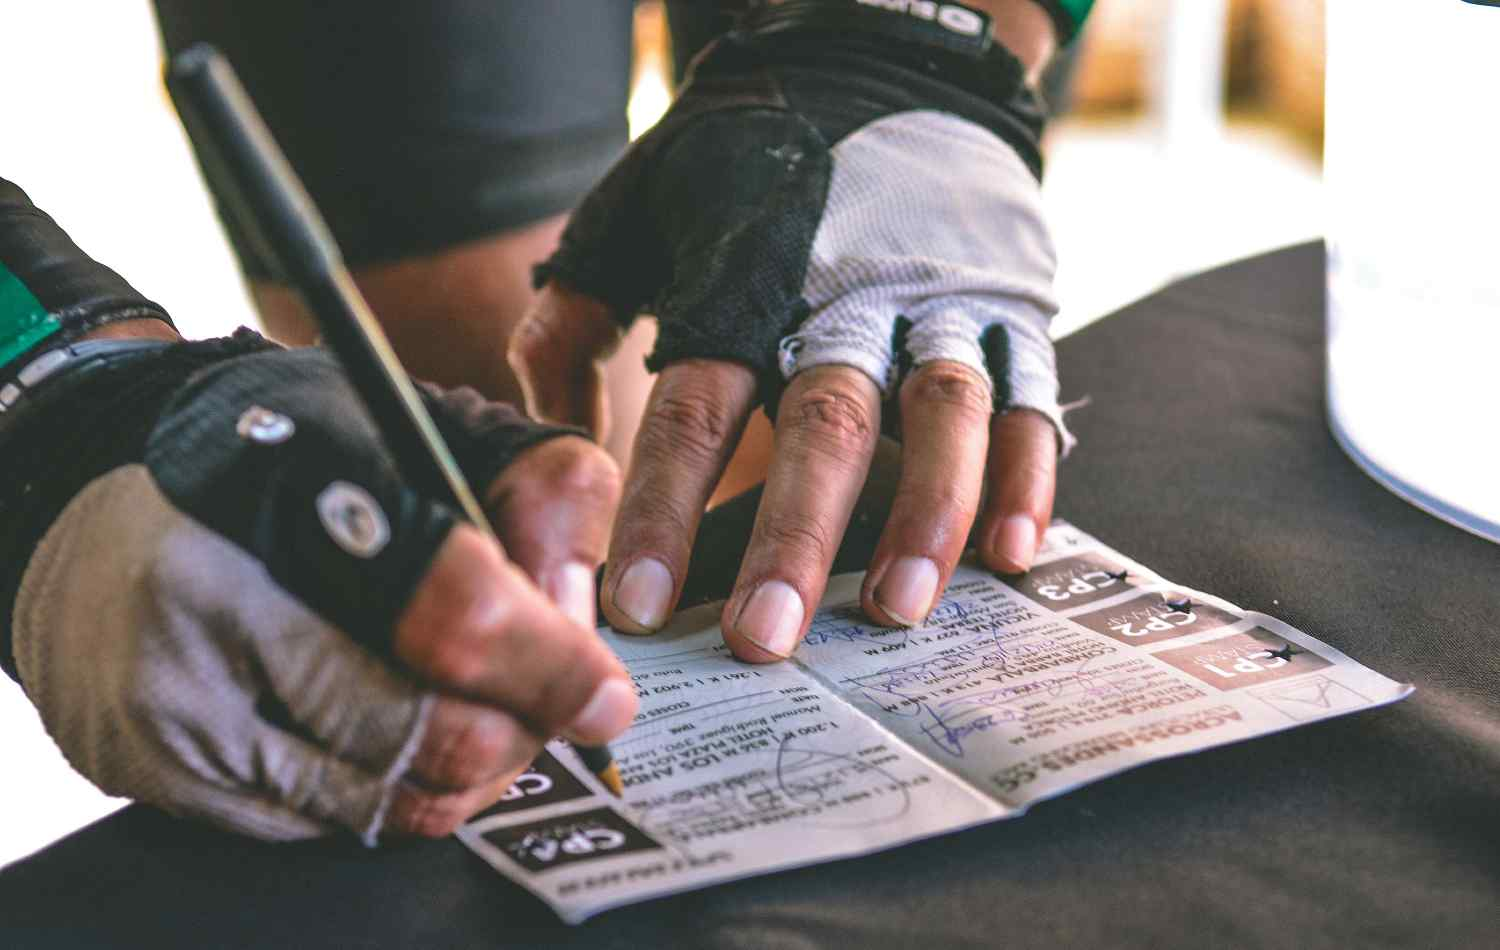 Close-up of two hands with bike mitt signing a paper